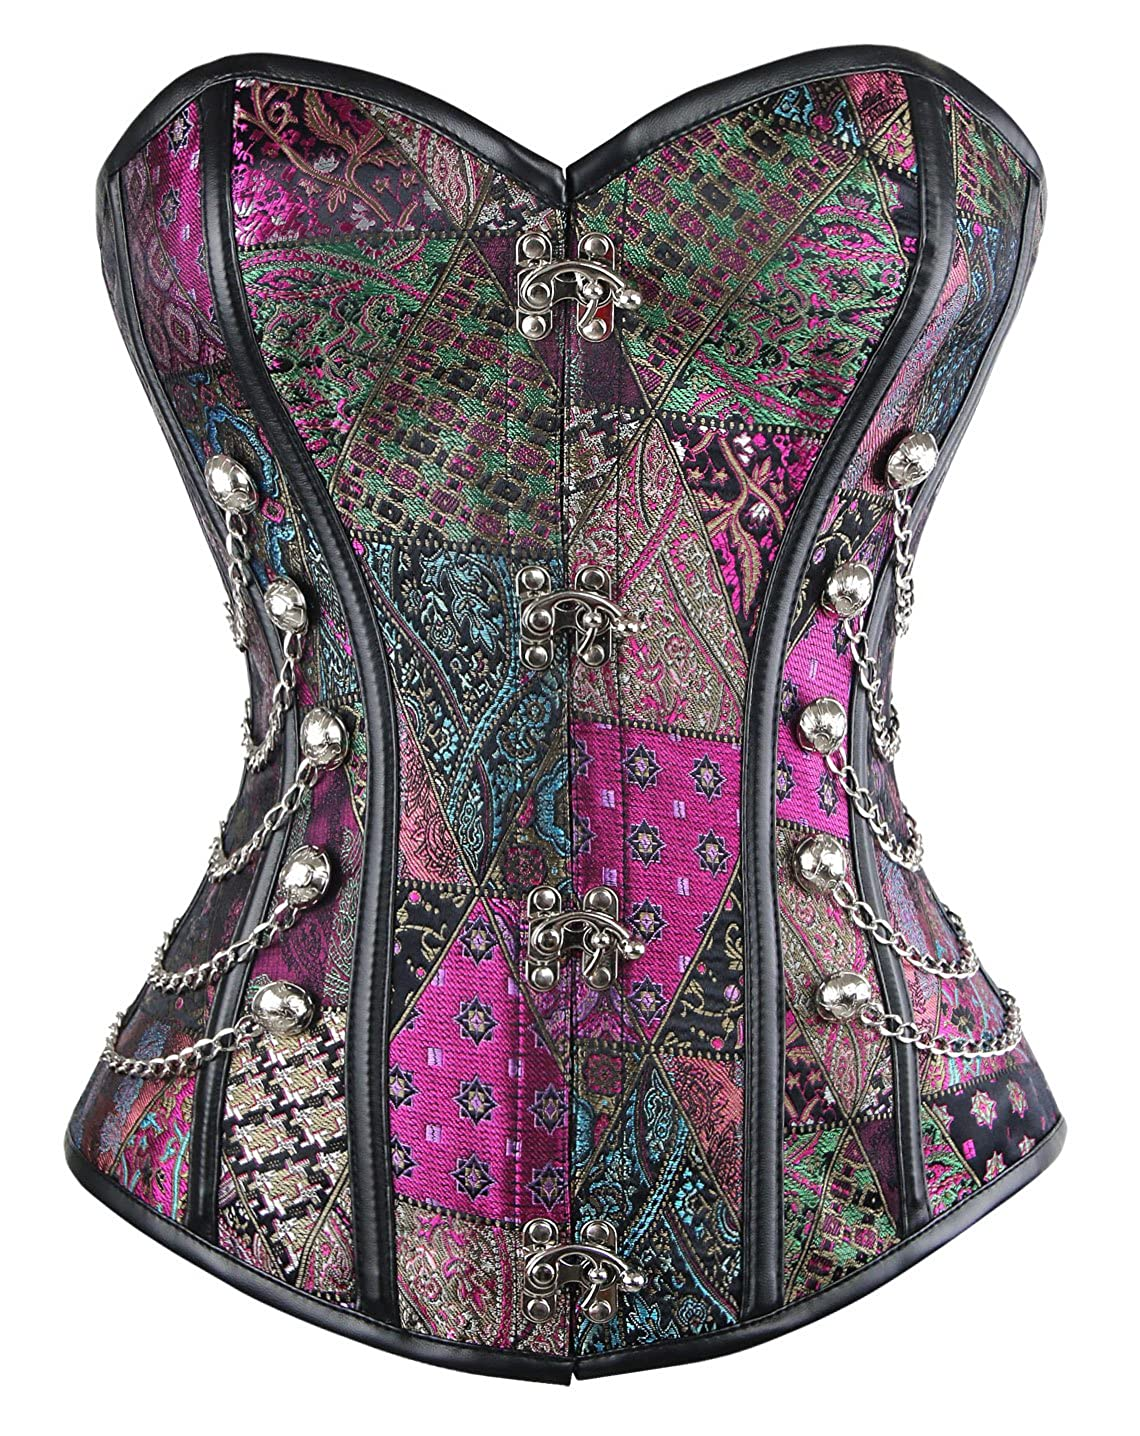 Steampunk Corsets & Belts | Underbust, Overbust Charmian Womens Spiral Steel Boned Steampunk Gothic Bustier Corset with Chains $36.59 AT vintagedancer.com